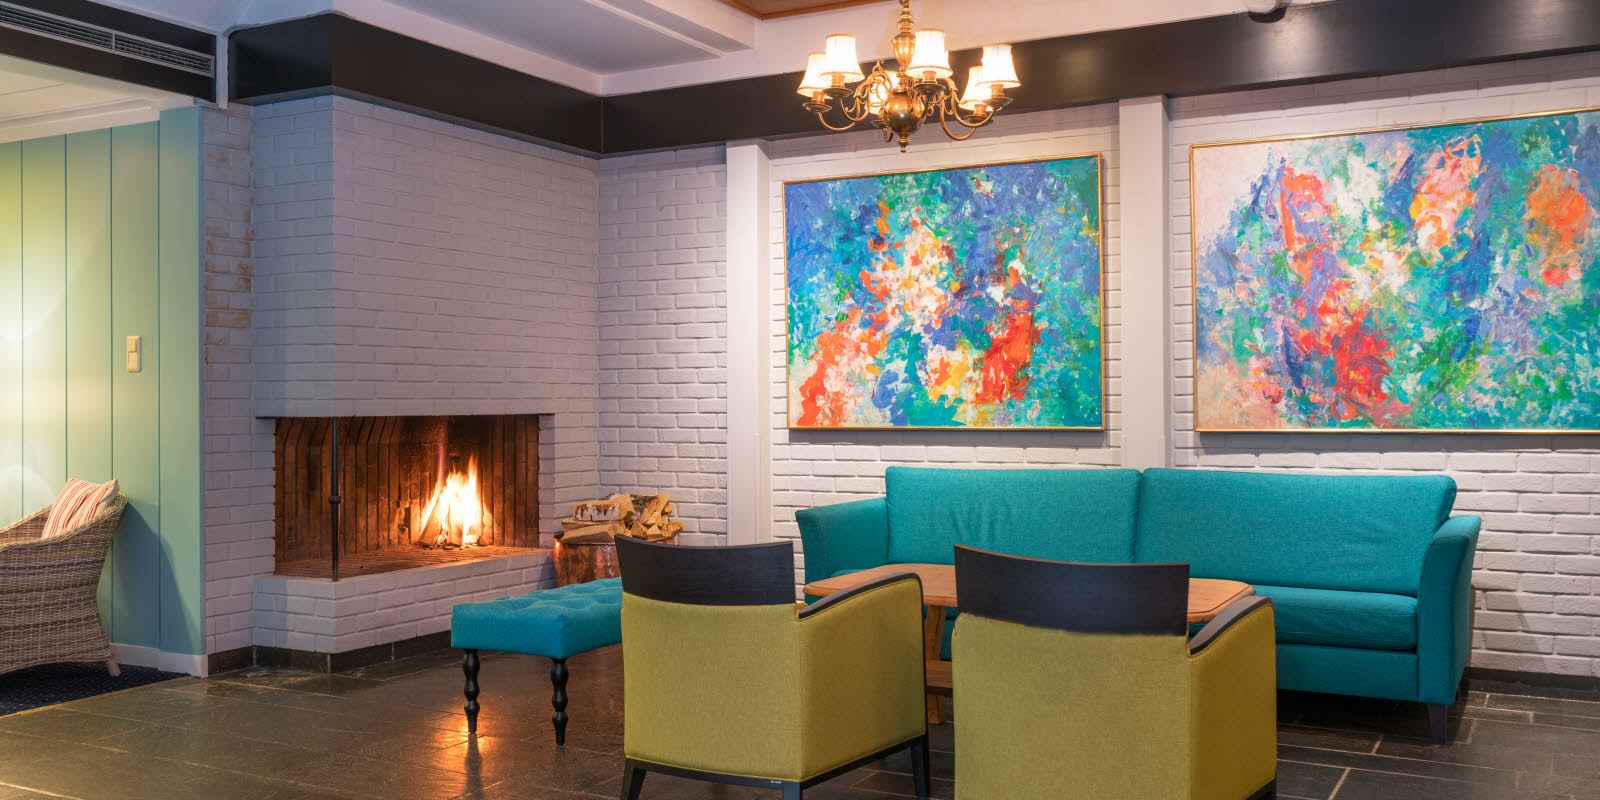 Lobby with seating area in fresh colours, fireplace and artwork on the walls of Thon Hotel Skeikampen